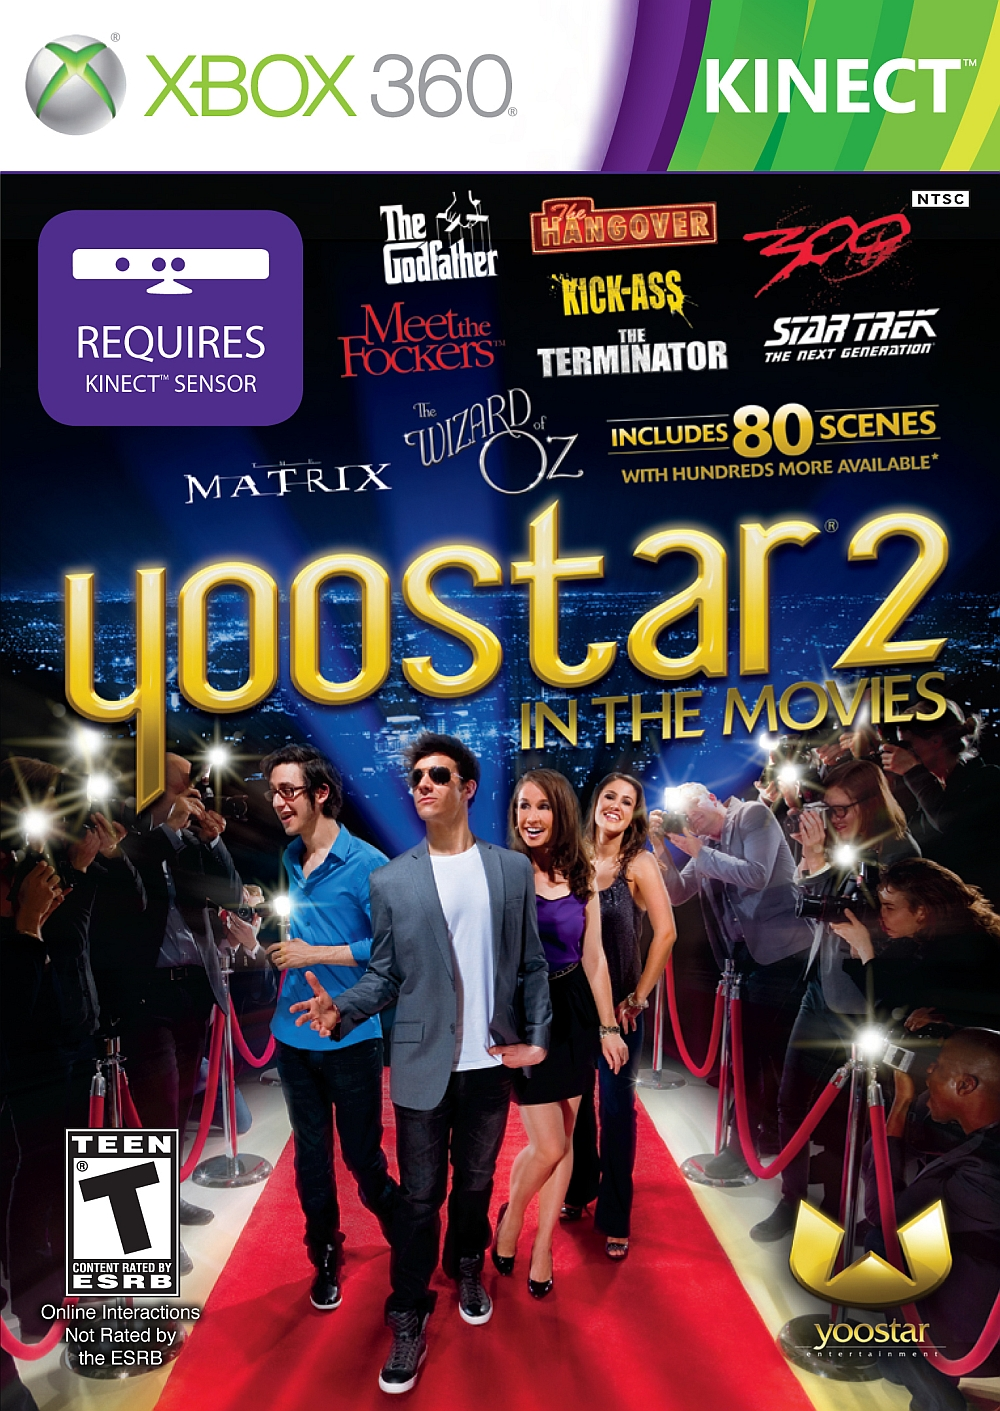 Yoostar 2 X360 US ESRB - YooStar 2 For XBox 360